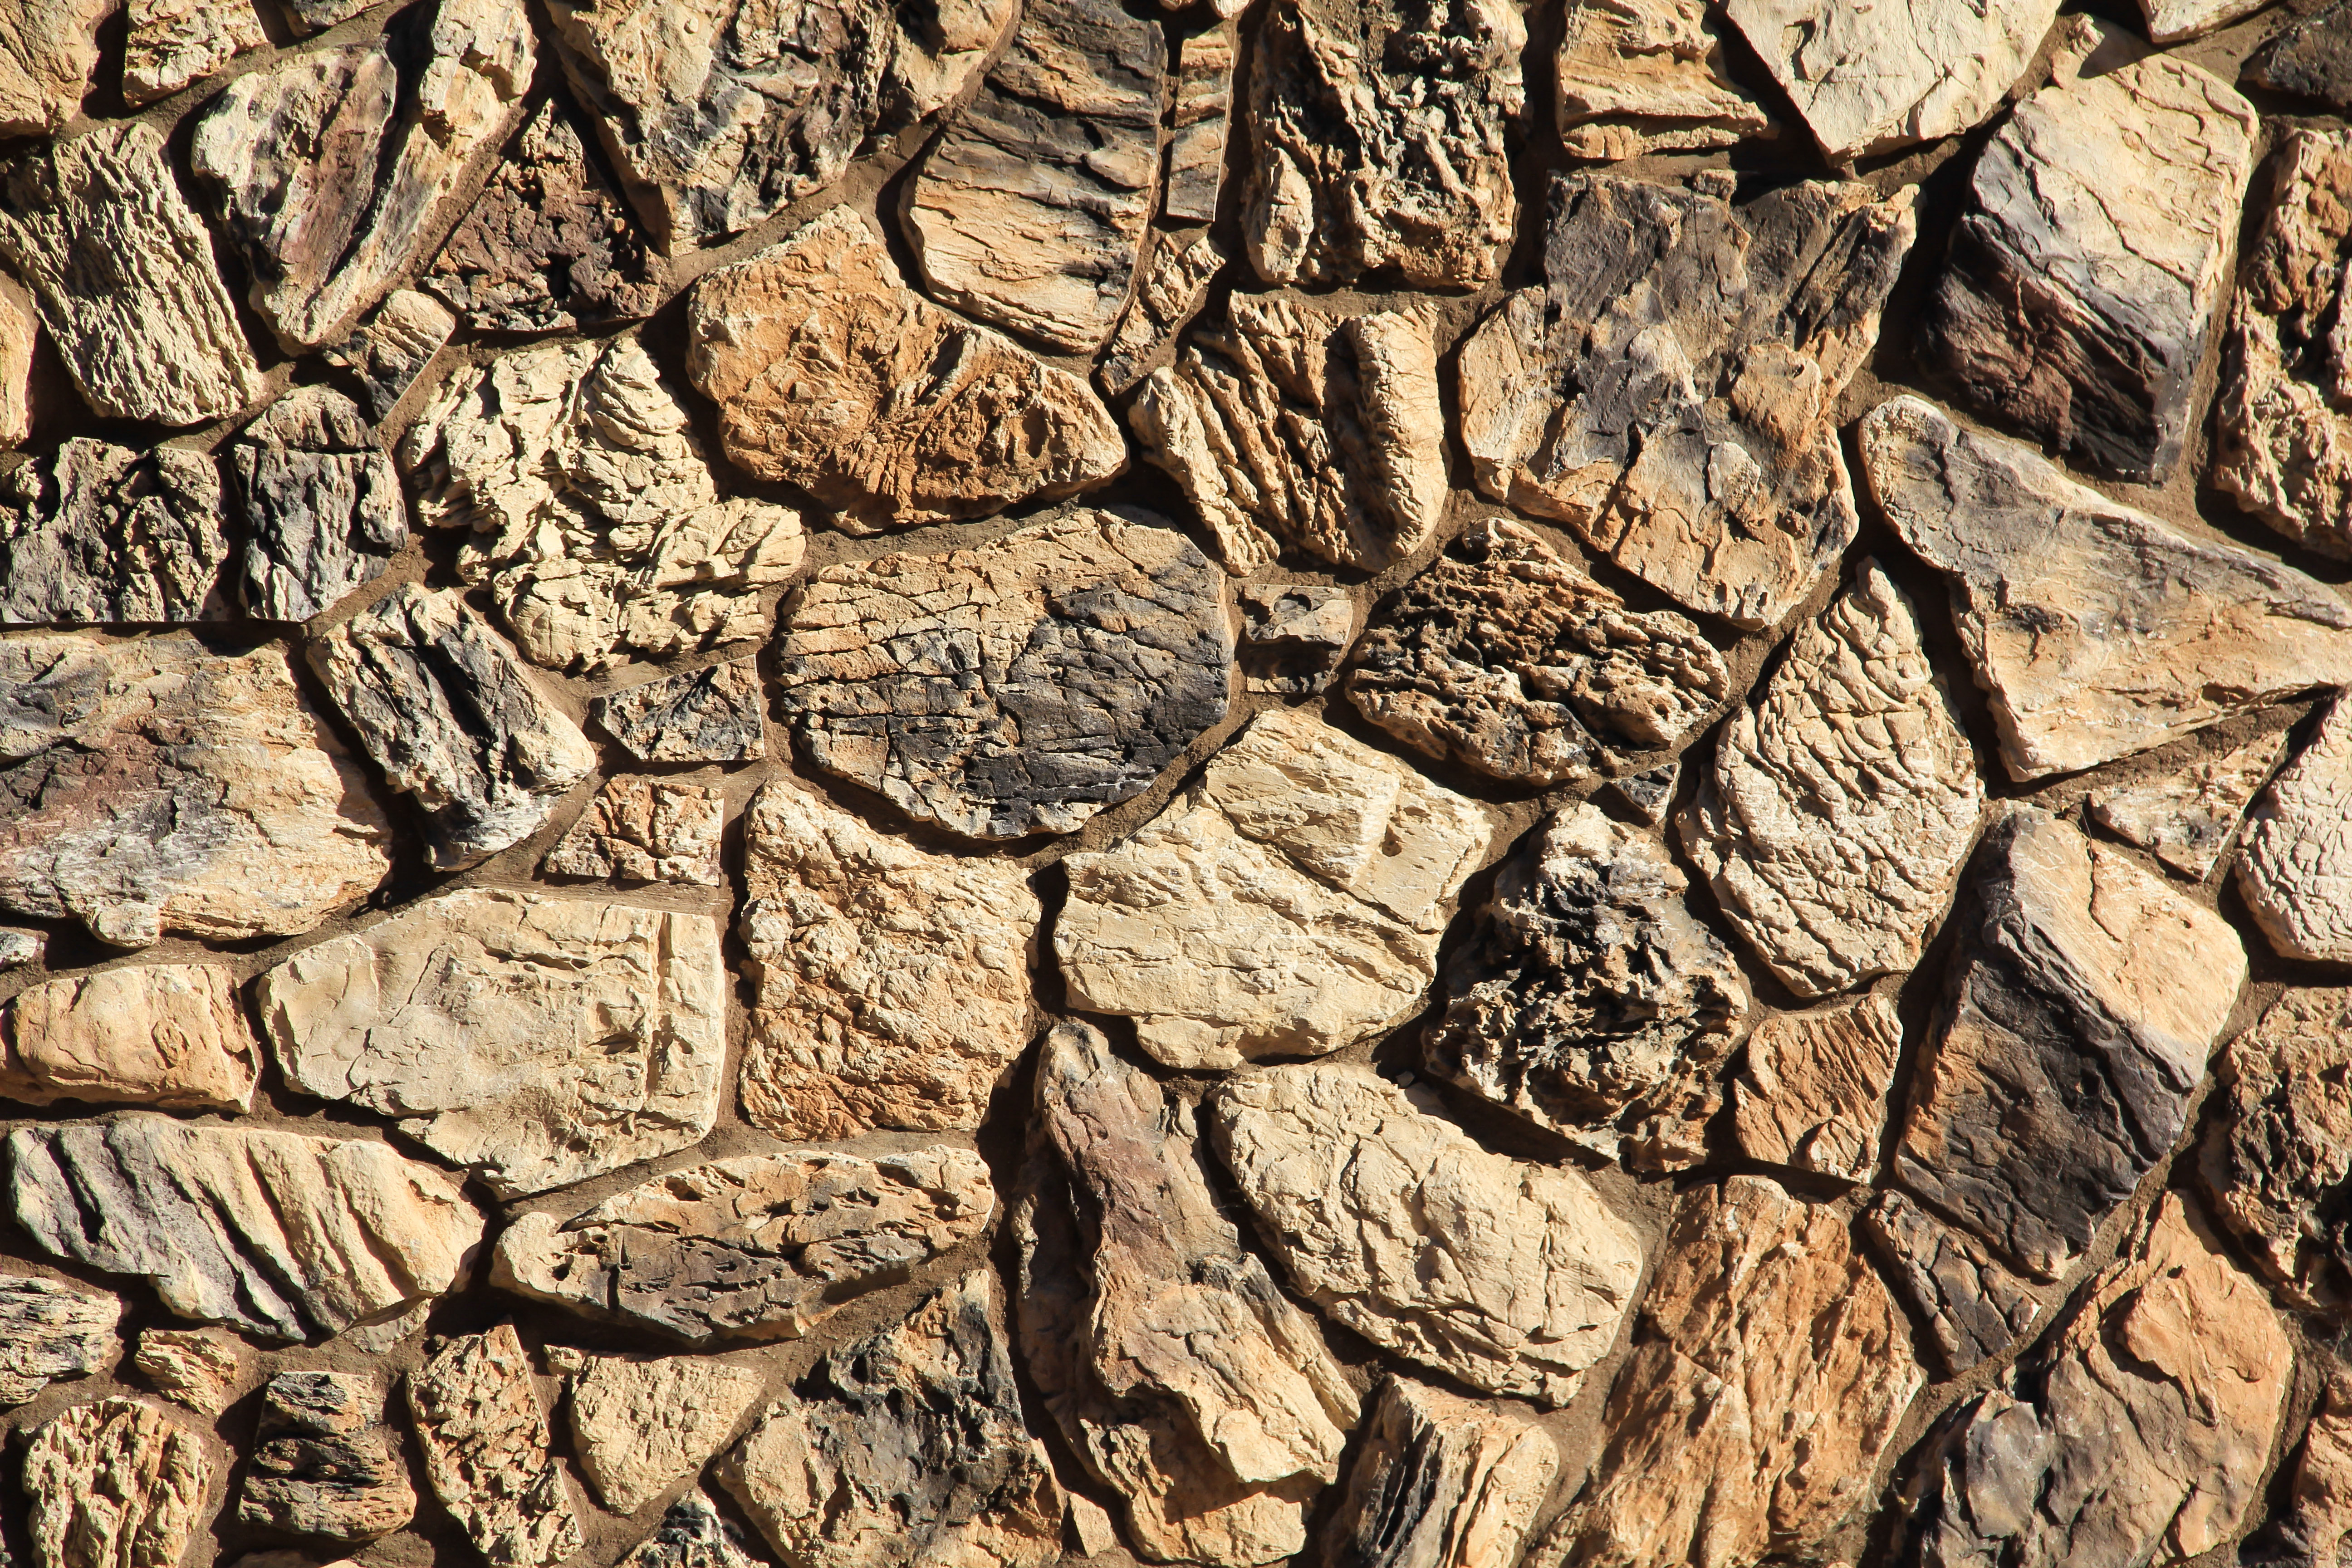 Rock Stone Texture : Stone texture rock wall jagged rough brown masonry stock